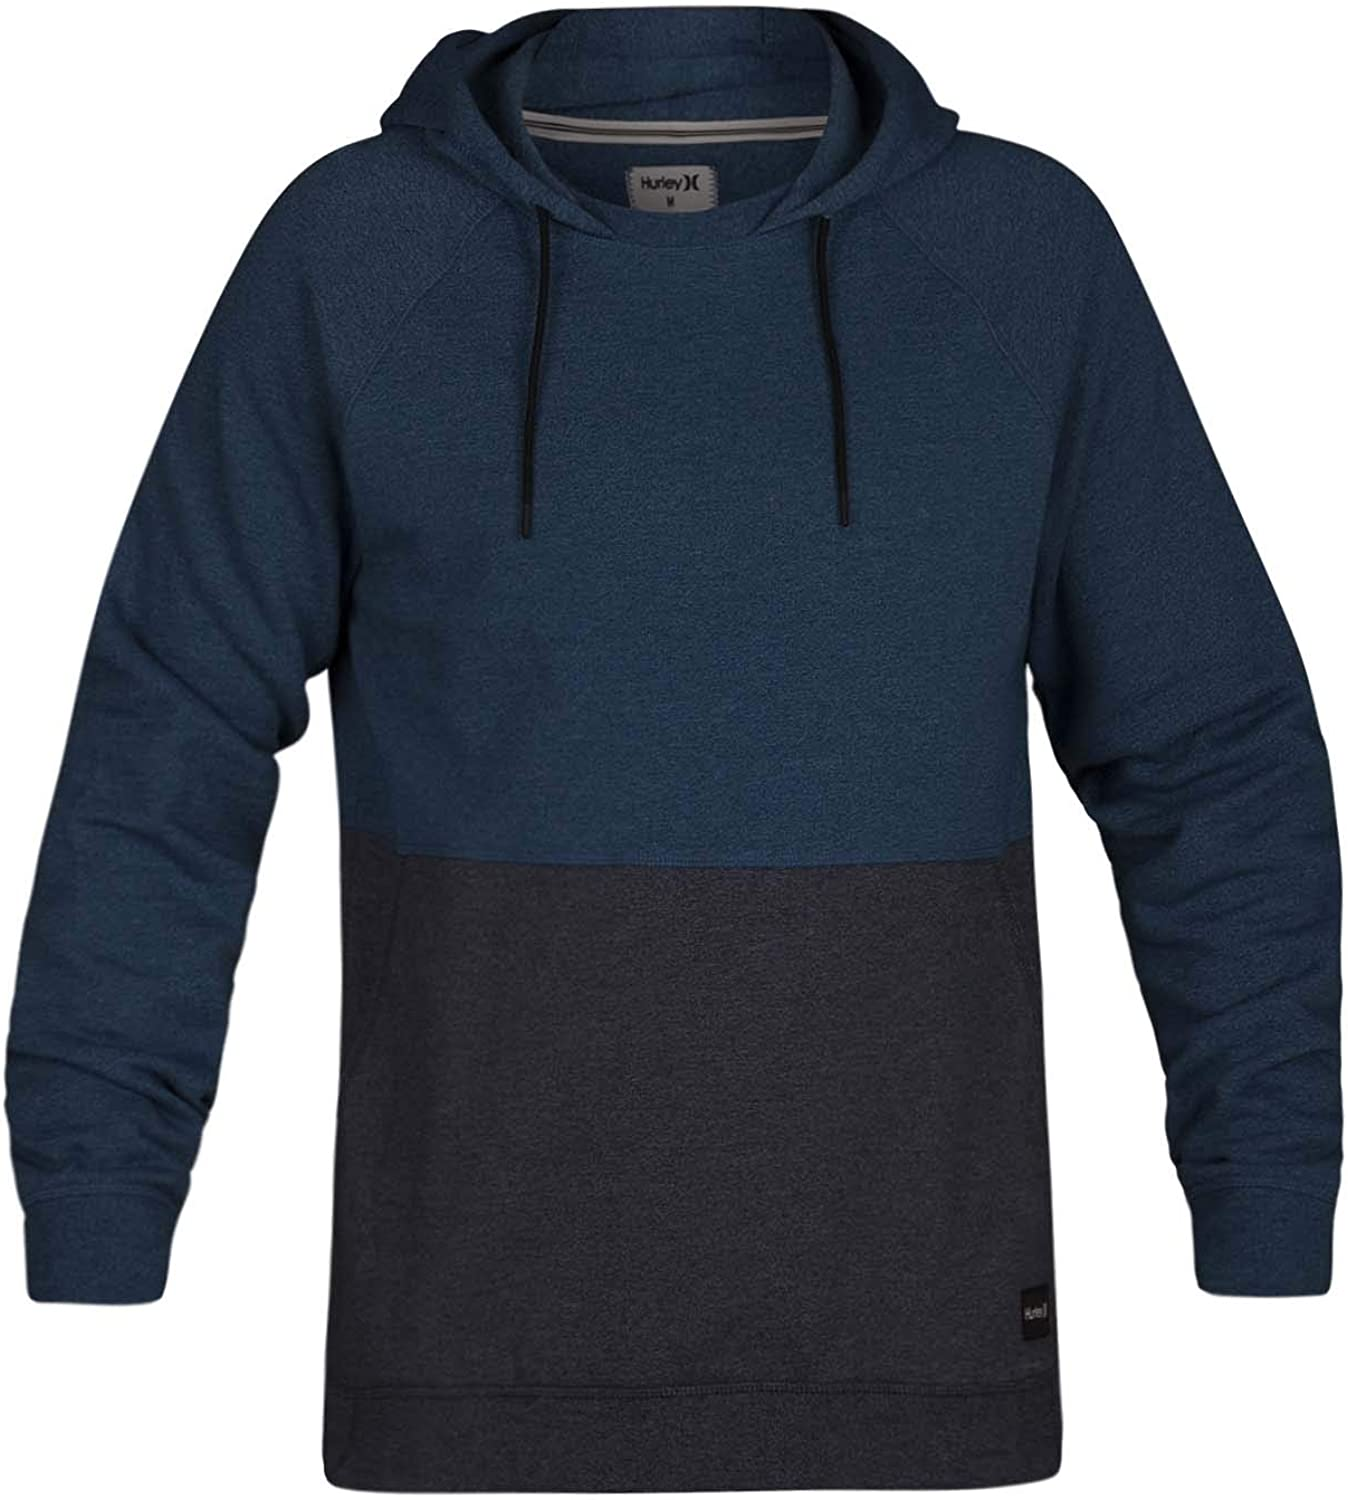 Hurley Men's Crone Marled Popularity New Orleans Mall Hoodie Pullover Textured